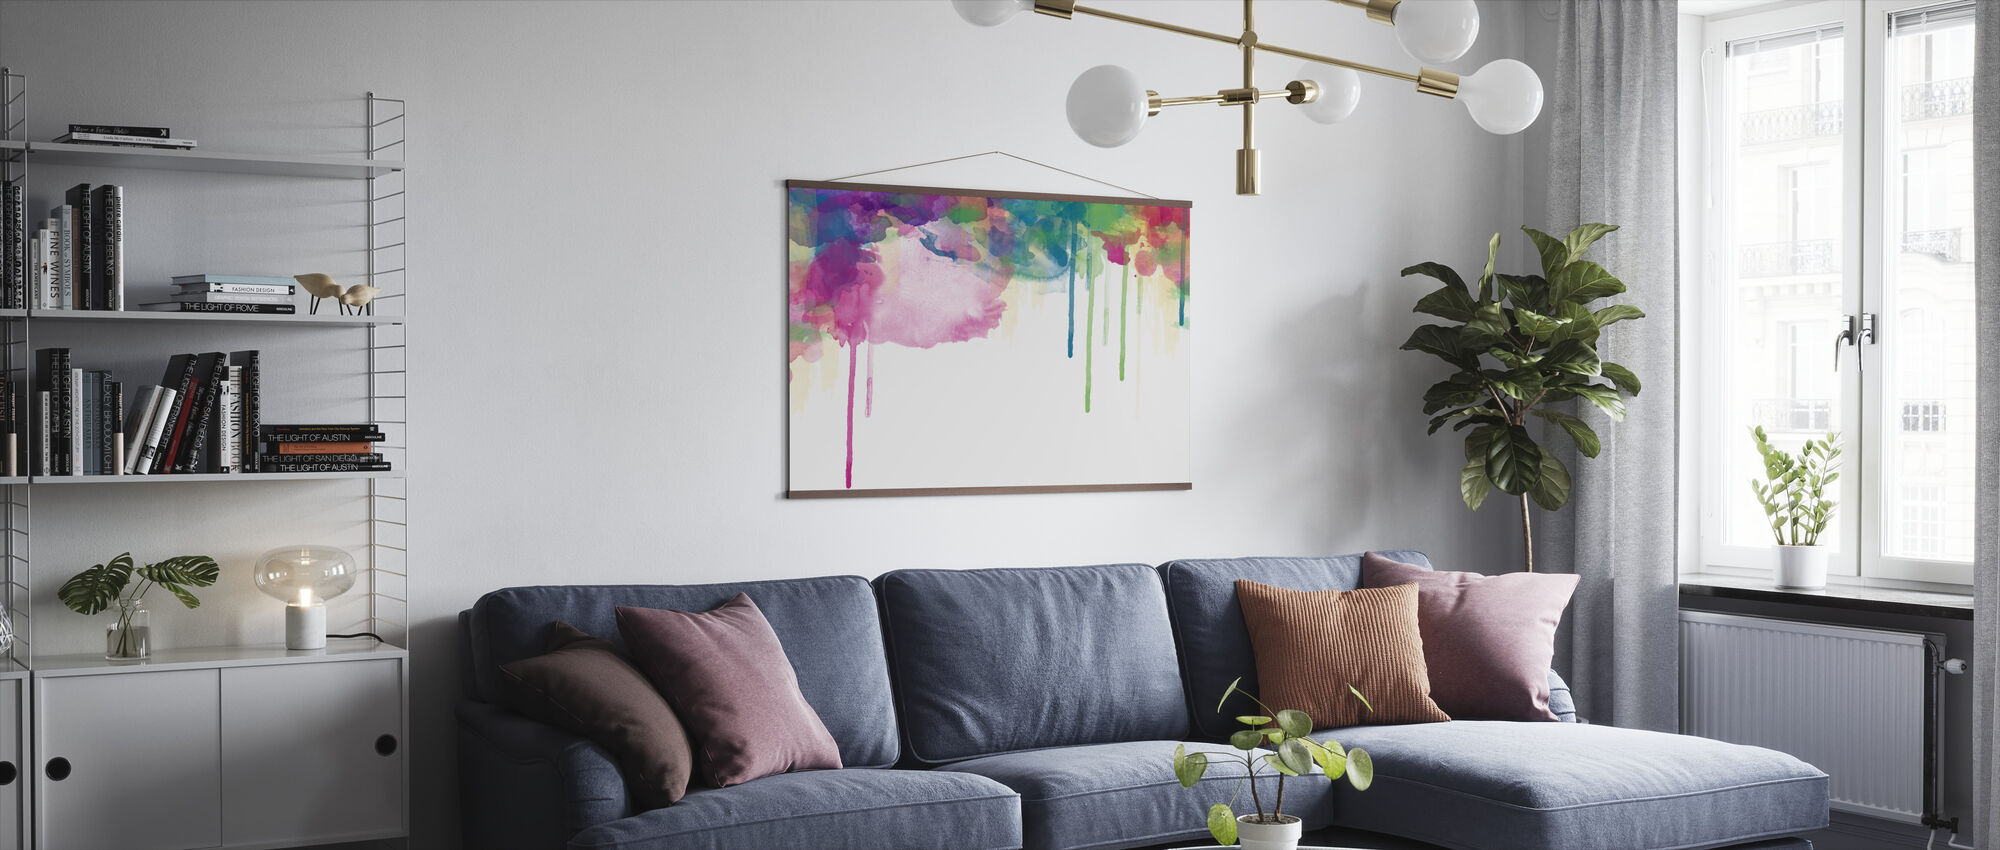 Colour Drips - Poster - Living Room